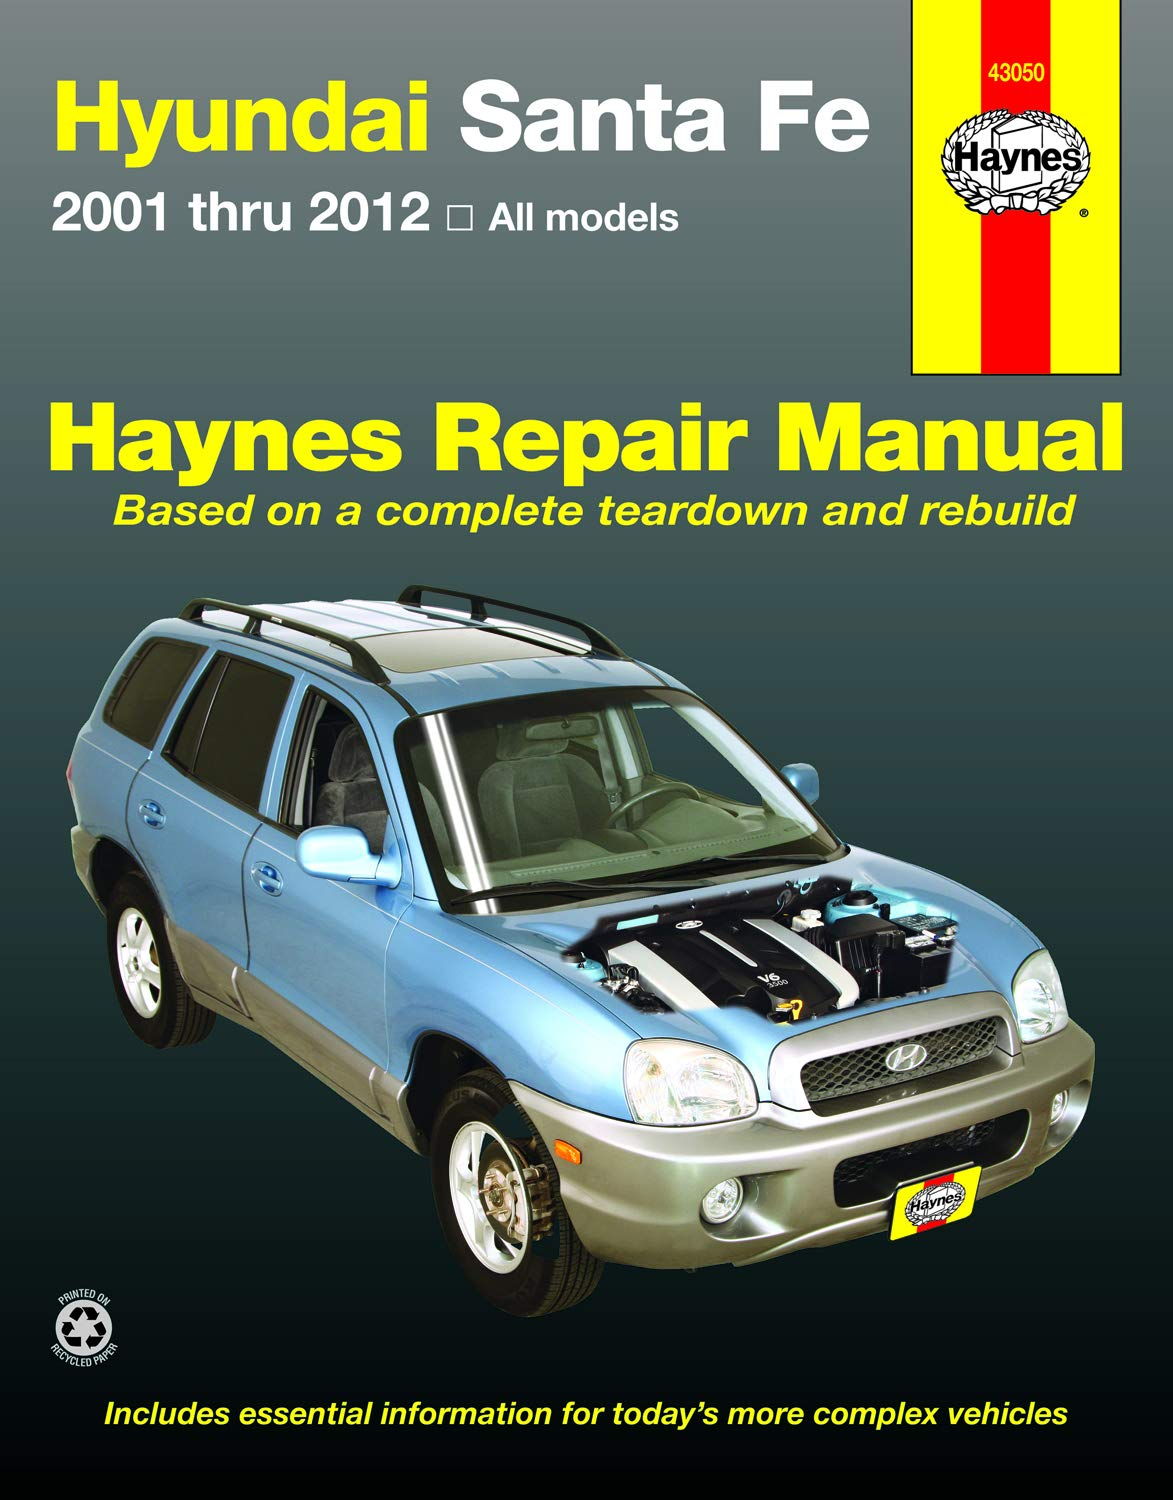 Download Hyundai Sante Fe 2001 Thru 2012 All Models Haynes Repair Manual: 2001 Thru 2012 All Models (Hayne's Automotive Repair Manual) 